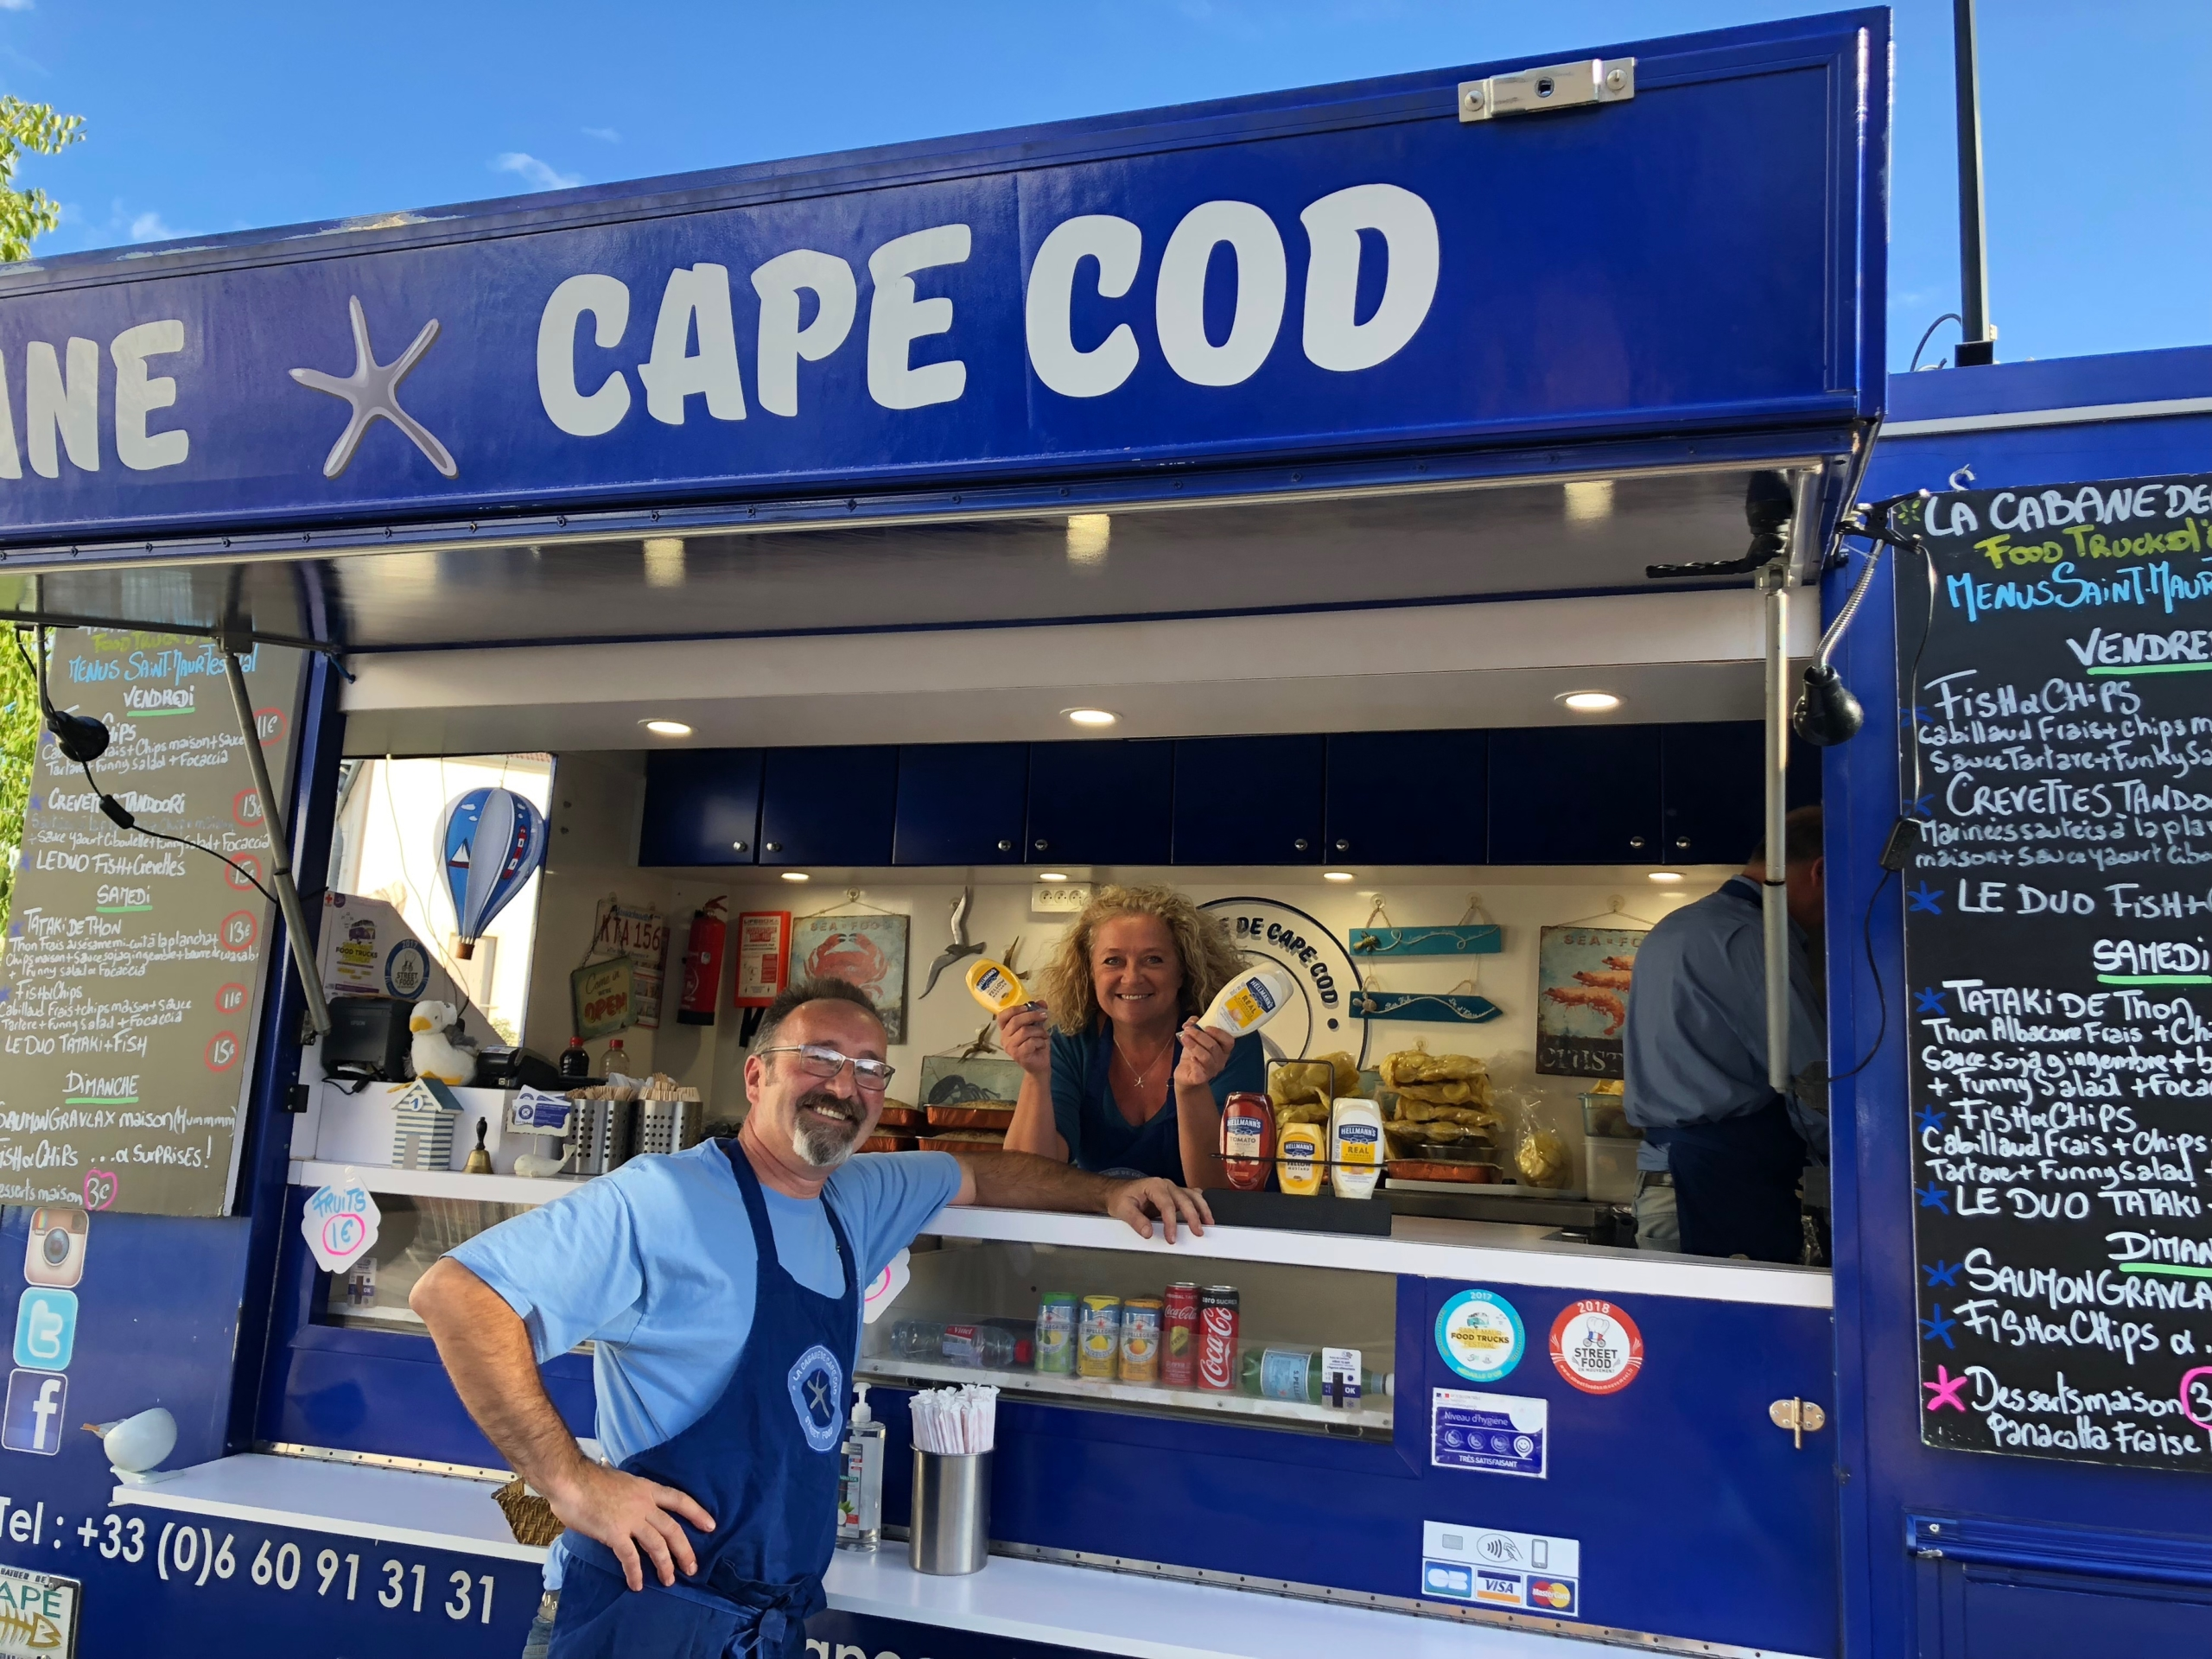 Cabane Cape Cod - Food Truck Fish & Chips